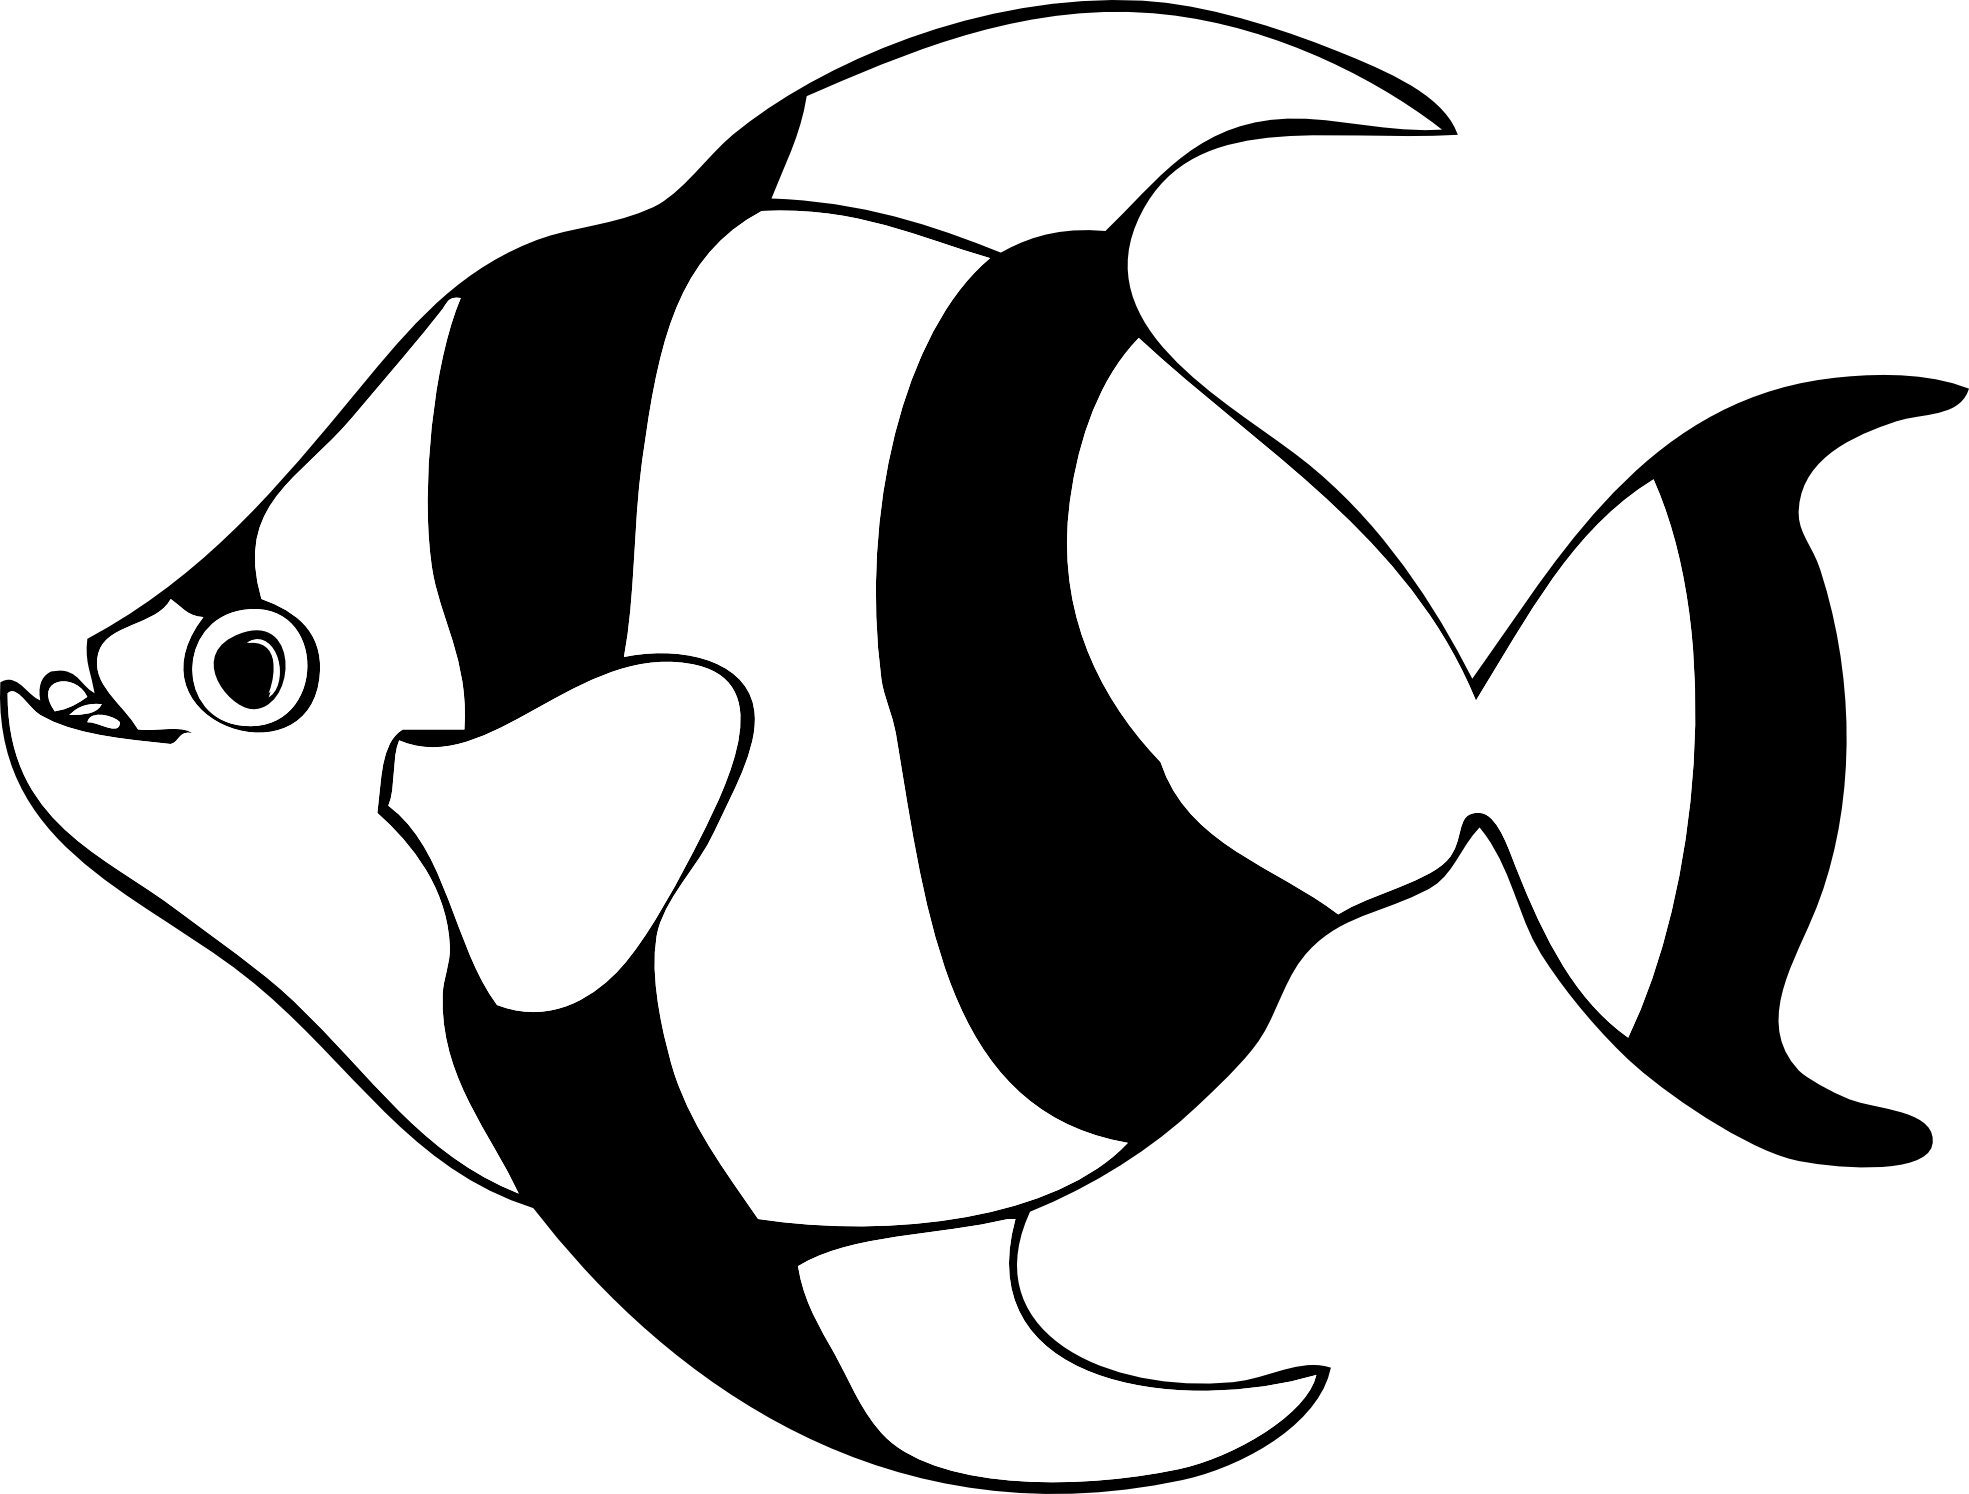 Big fish eating small fish clipart image black and white stock Fish Clip Art Black And White | Clipart Panda - Free Clipart Images image black and white stock